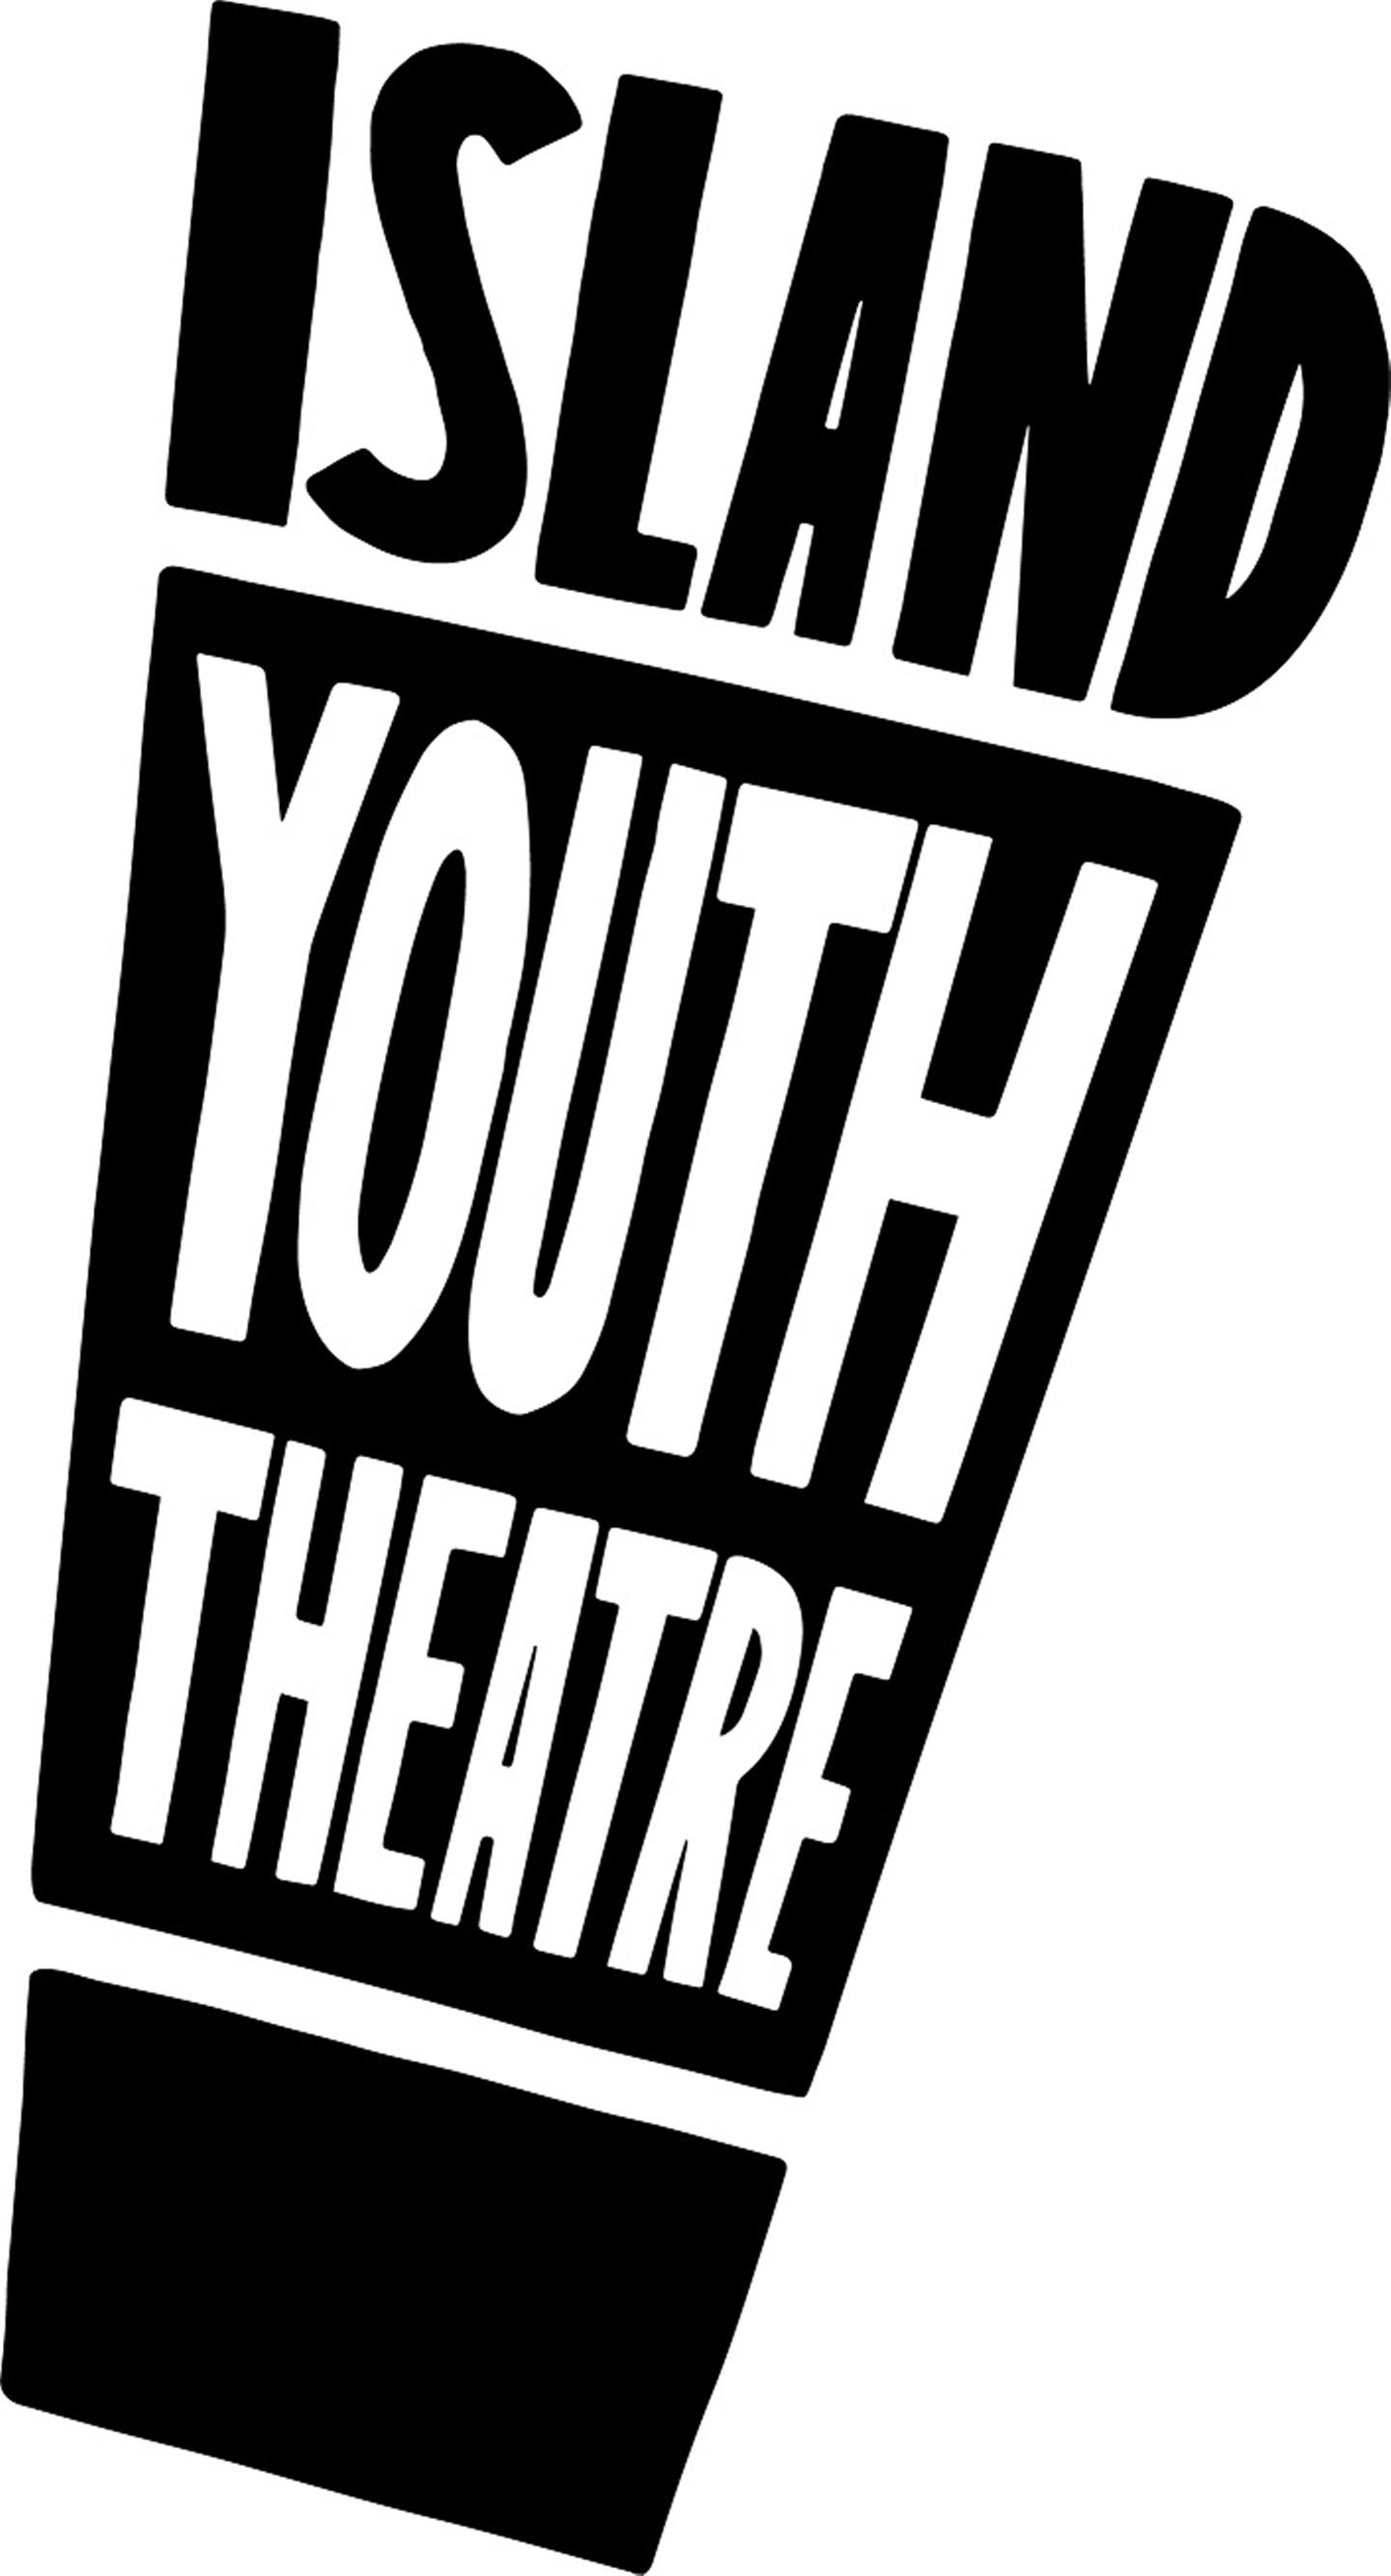 ISLAND YOUTH THEATRE (IYT) TERM 2